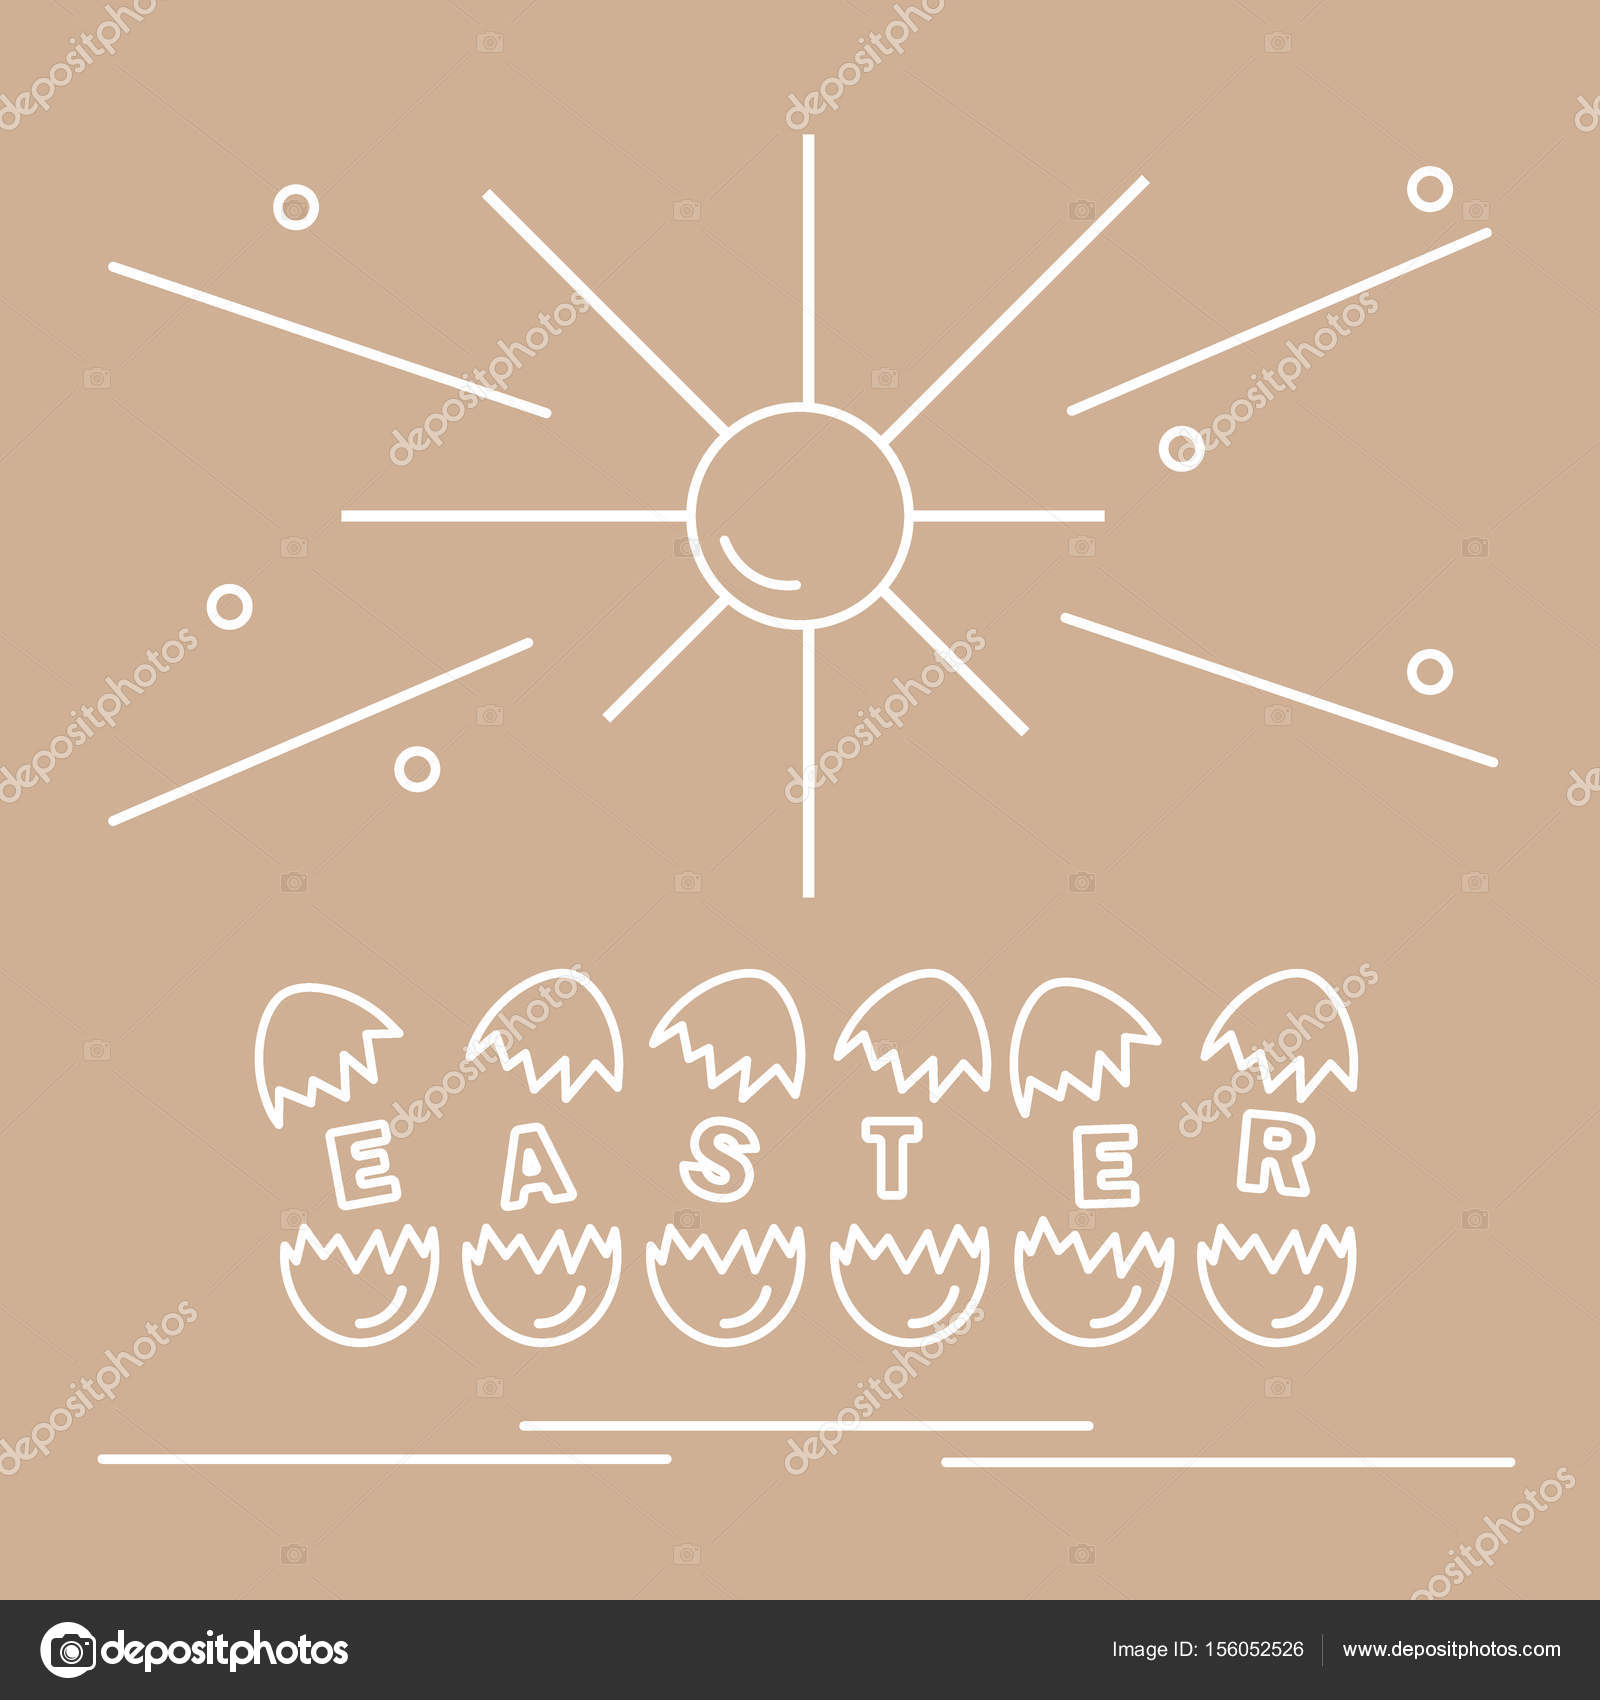 Cute Vector Illustration With Symbols For Easter Stock Vector